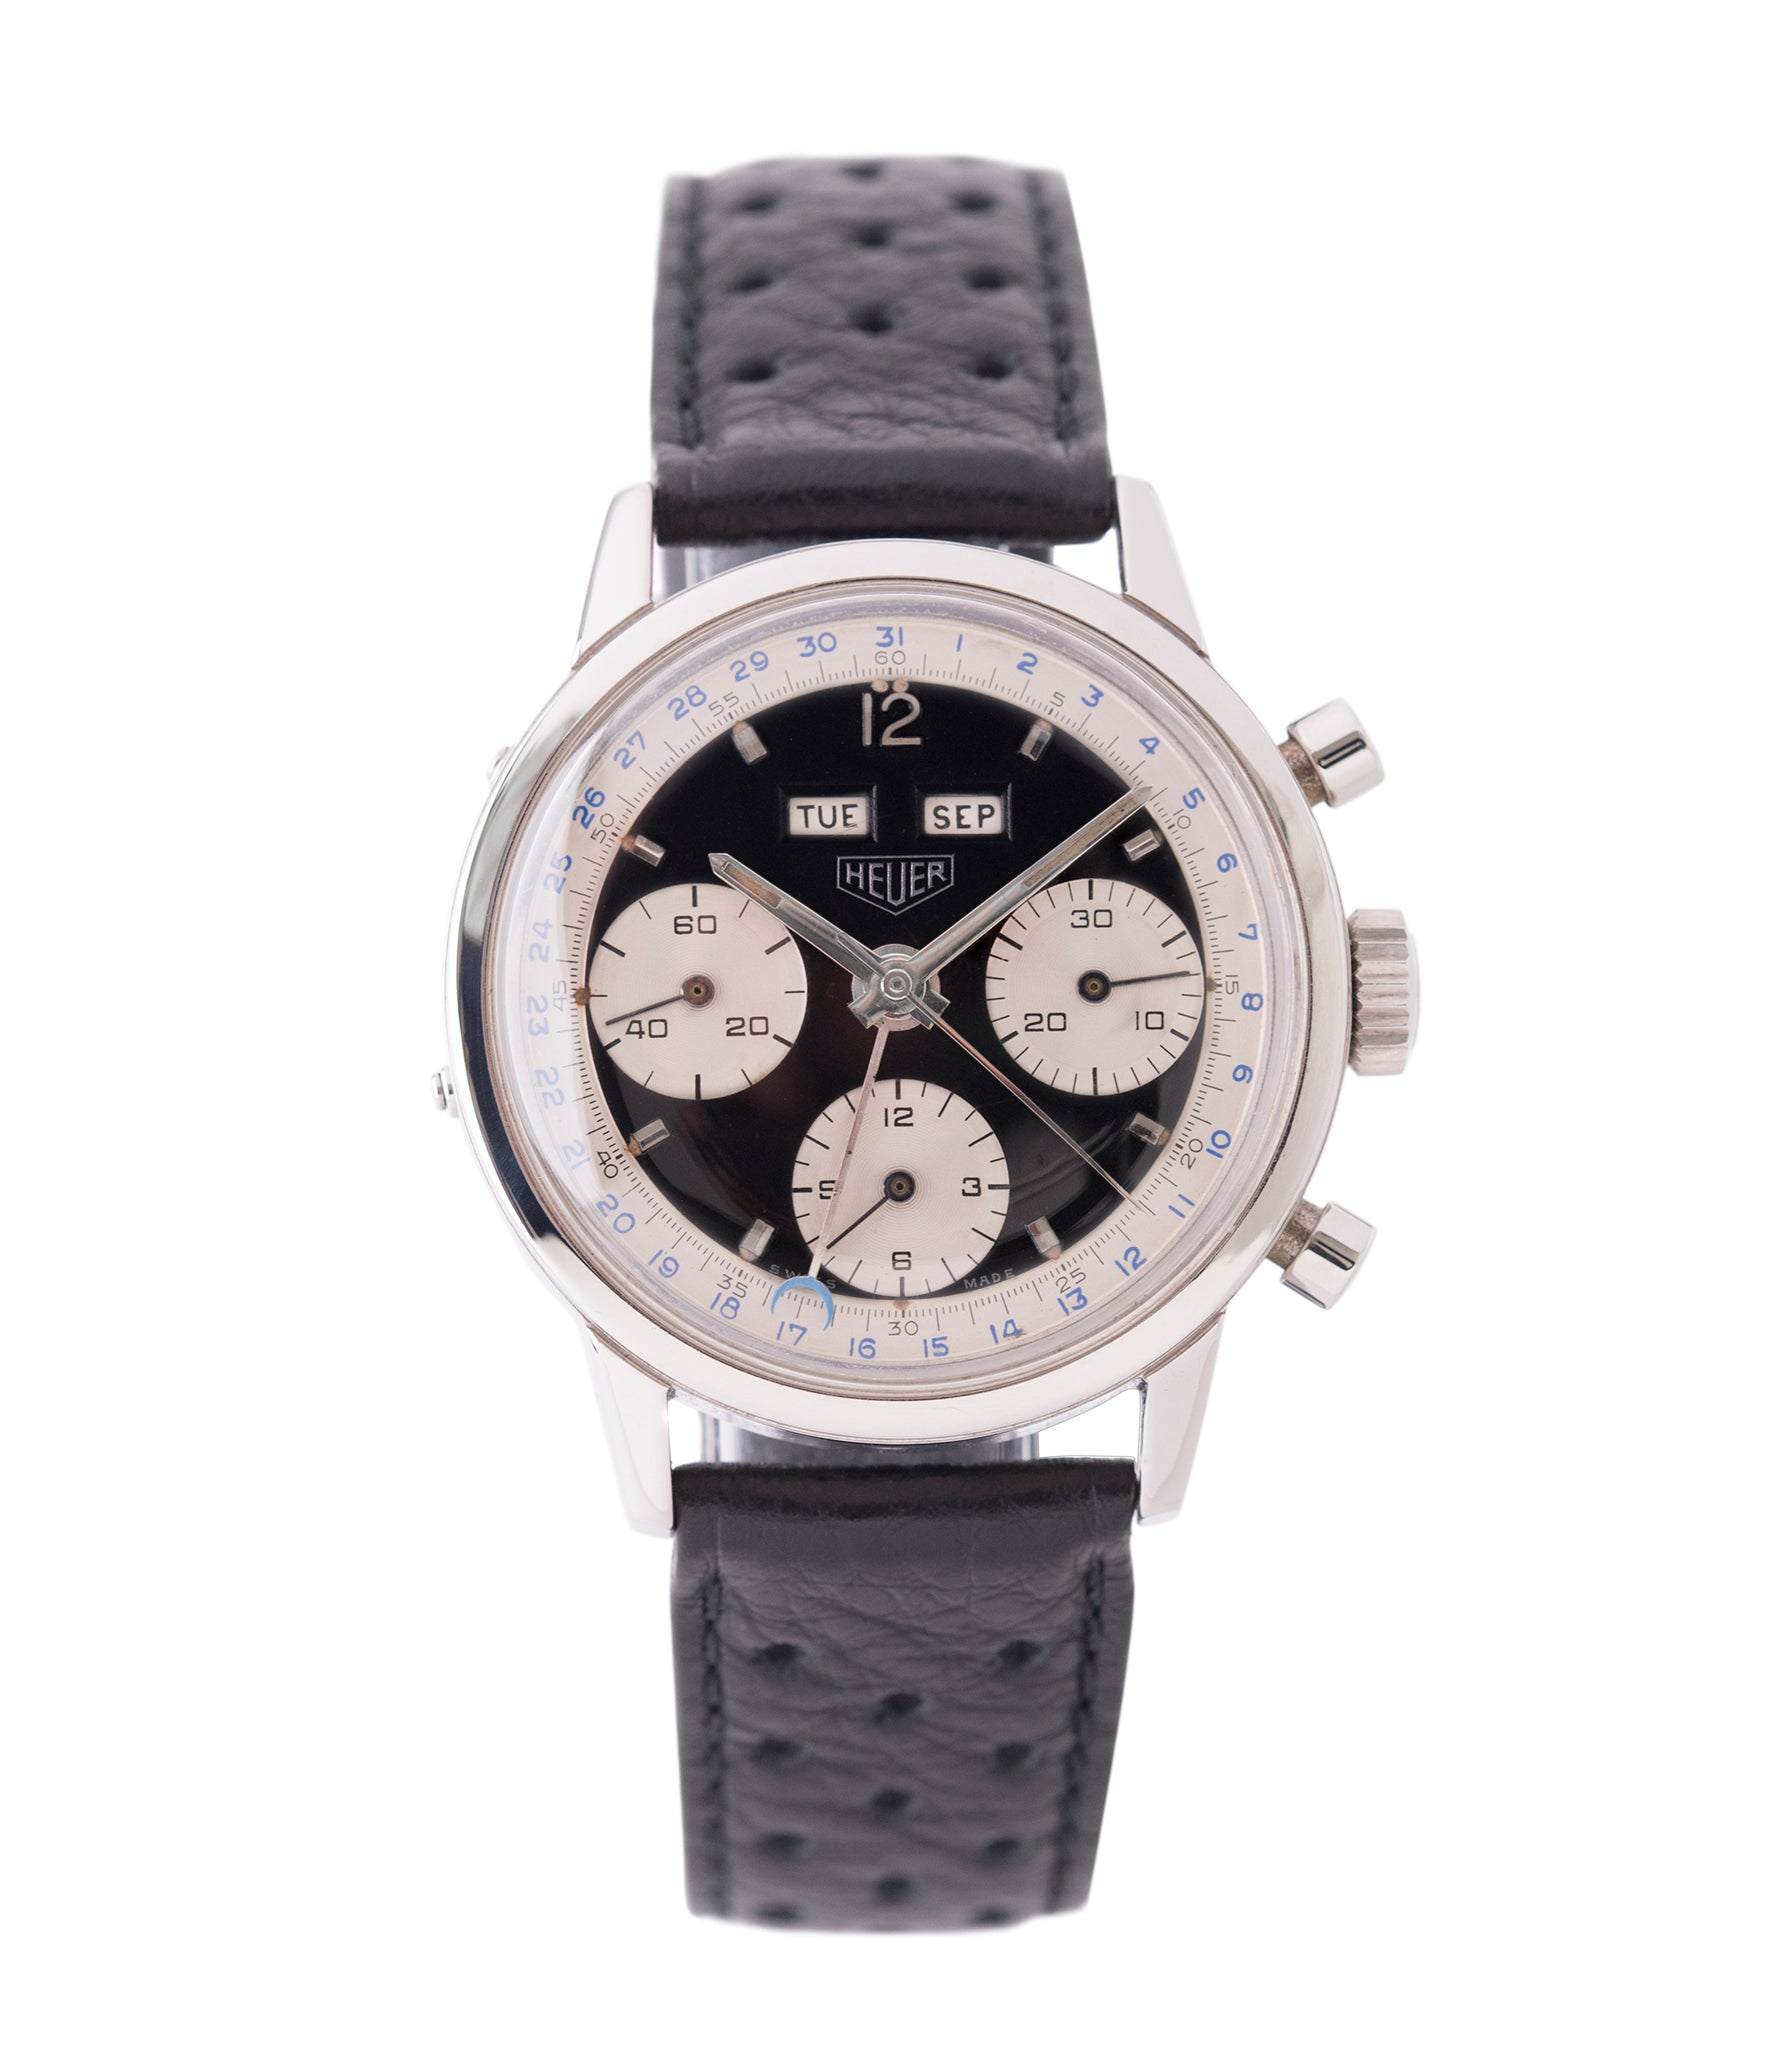 buy vintage Heuer Carrera 2546NS Dato 12 panda dial triple calendar chronograph most complicated Heuer watch for sale online at A Collected Man London UK specialist of rare watches